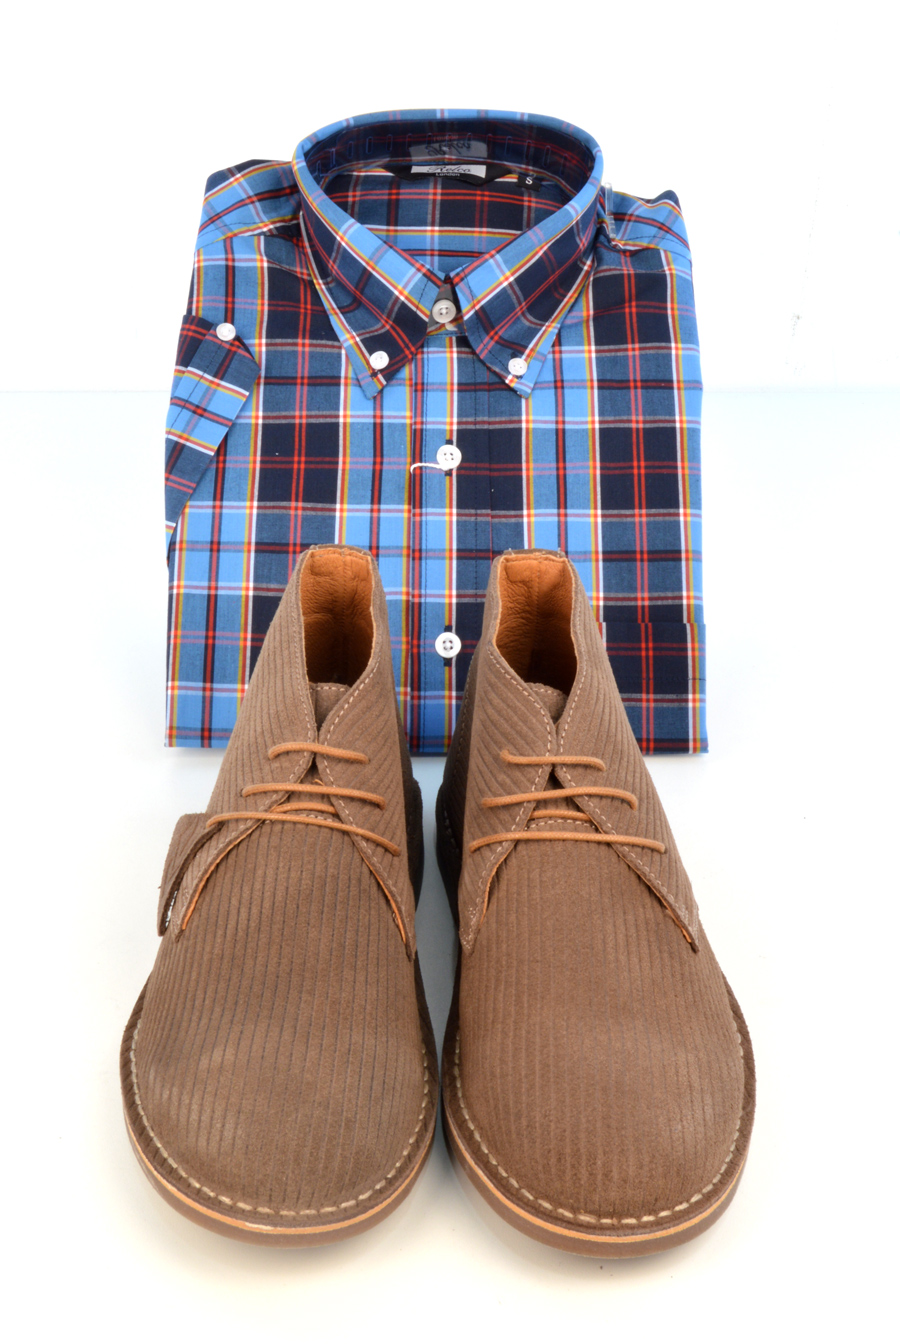 modshoes-preston-desert-boots-with-check-shirt